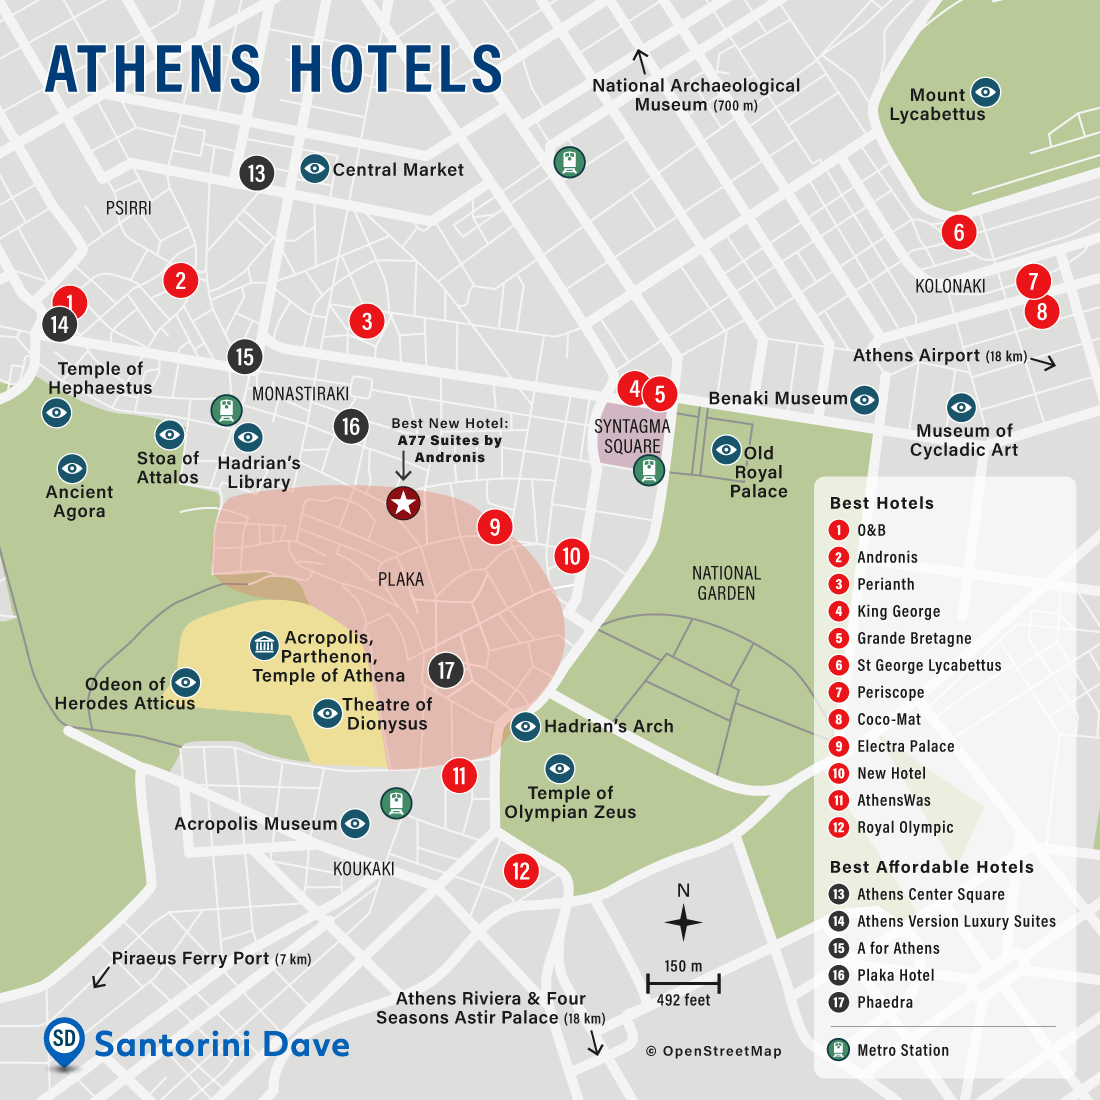 Map of Athens, Greece Hotels and Neighborhoods.